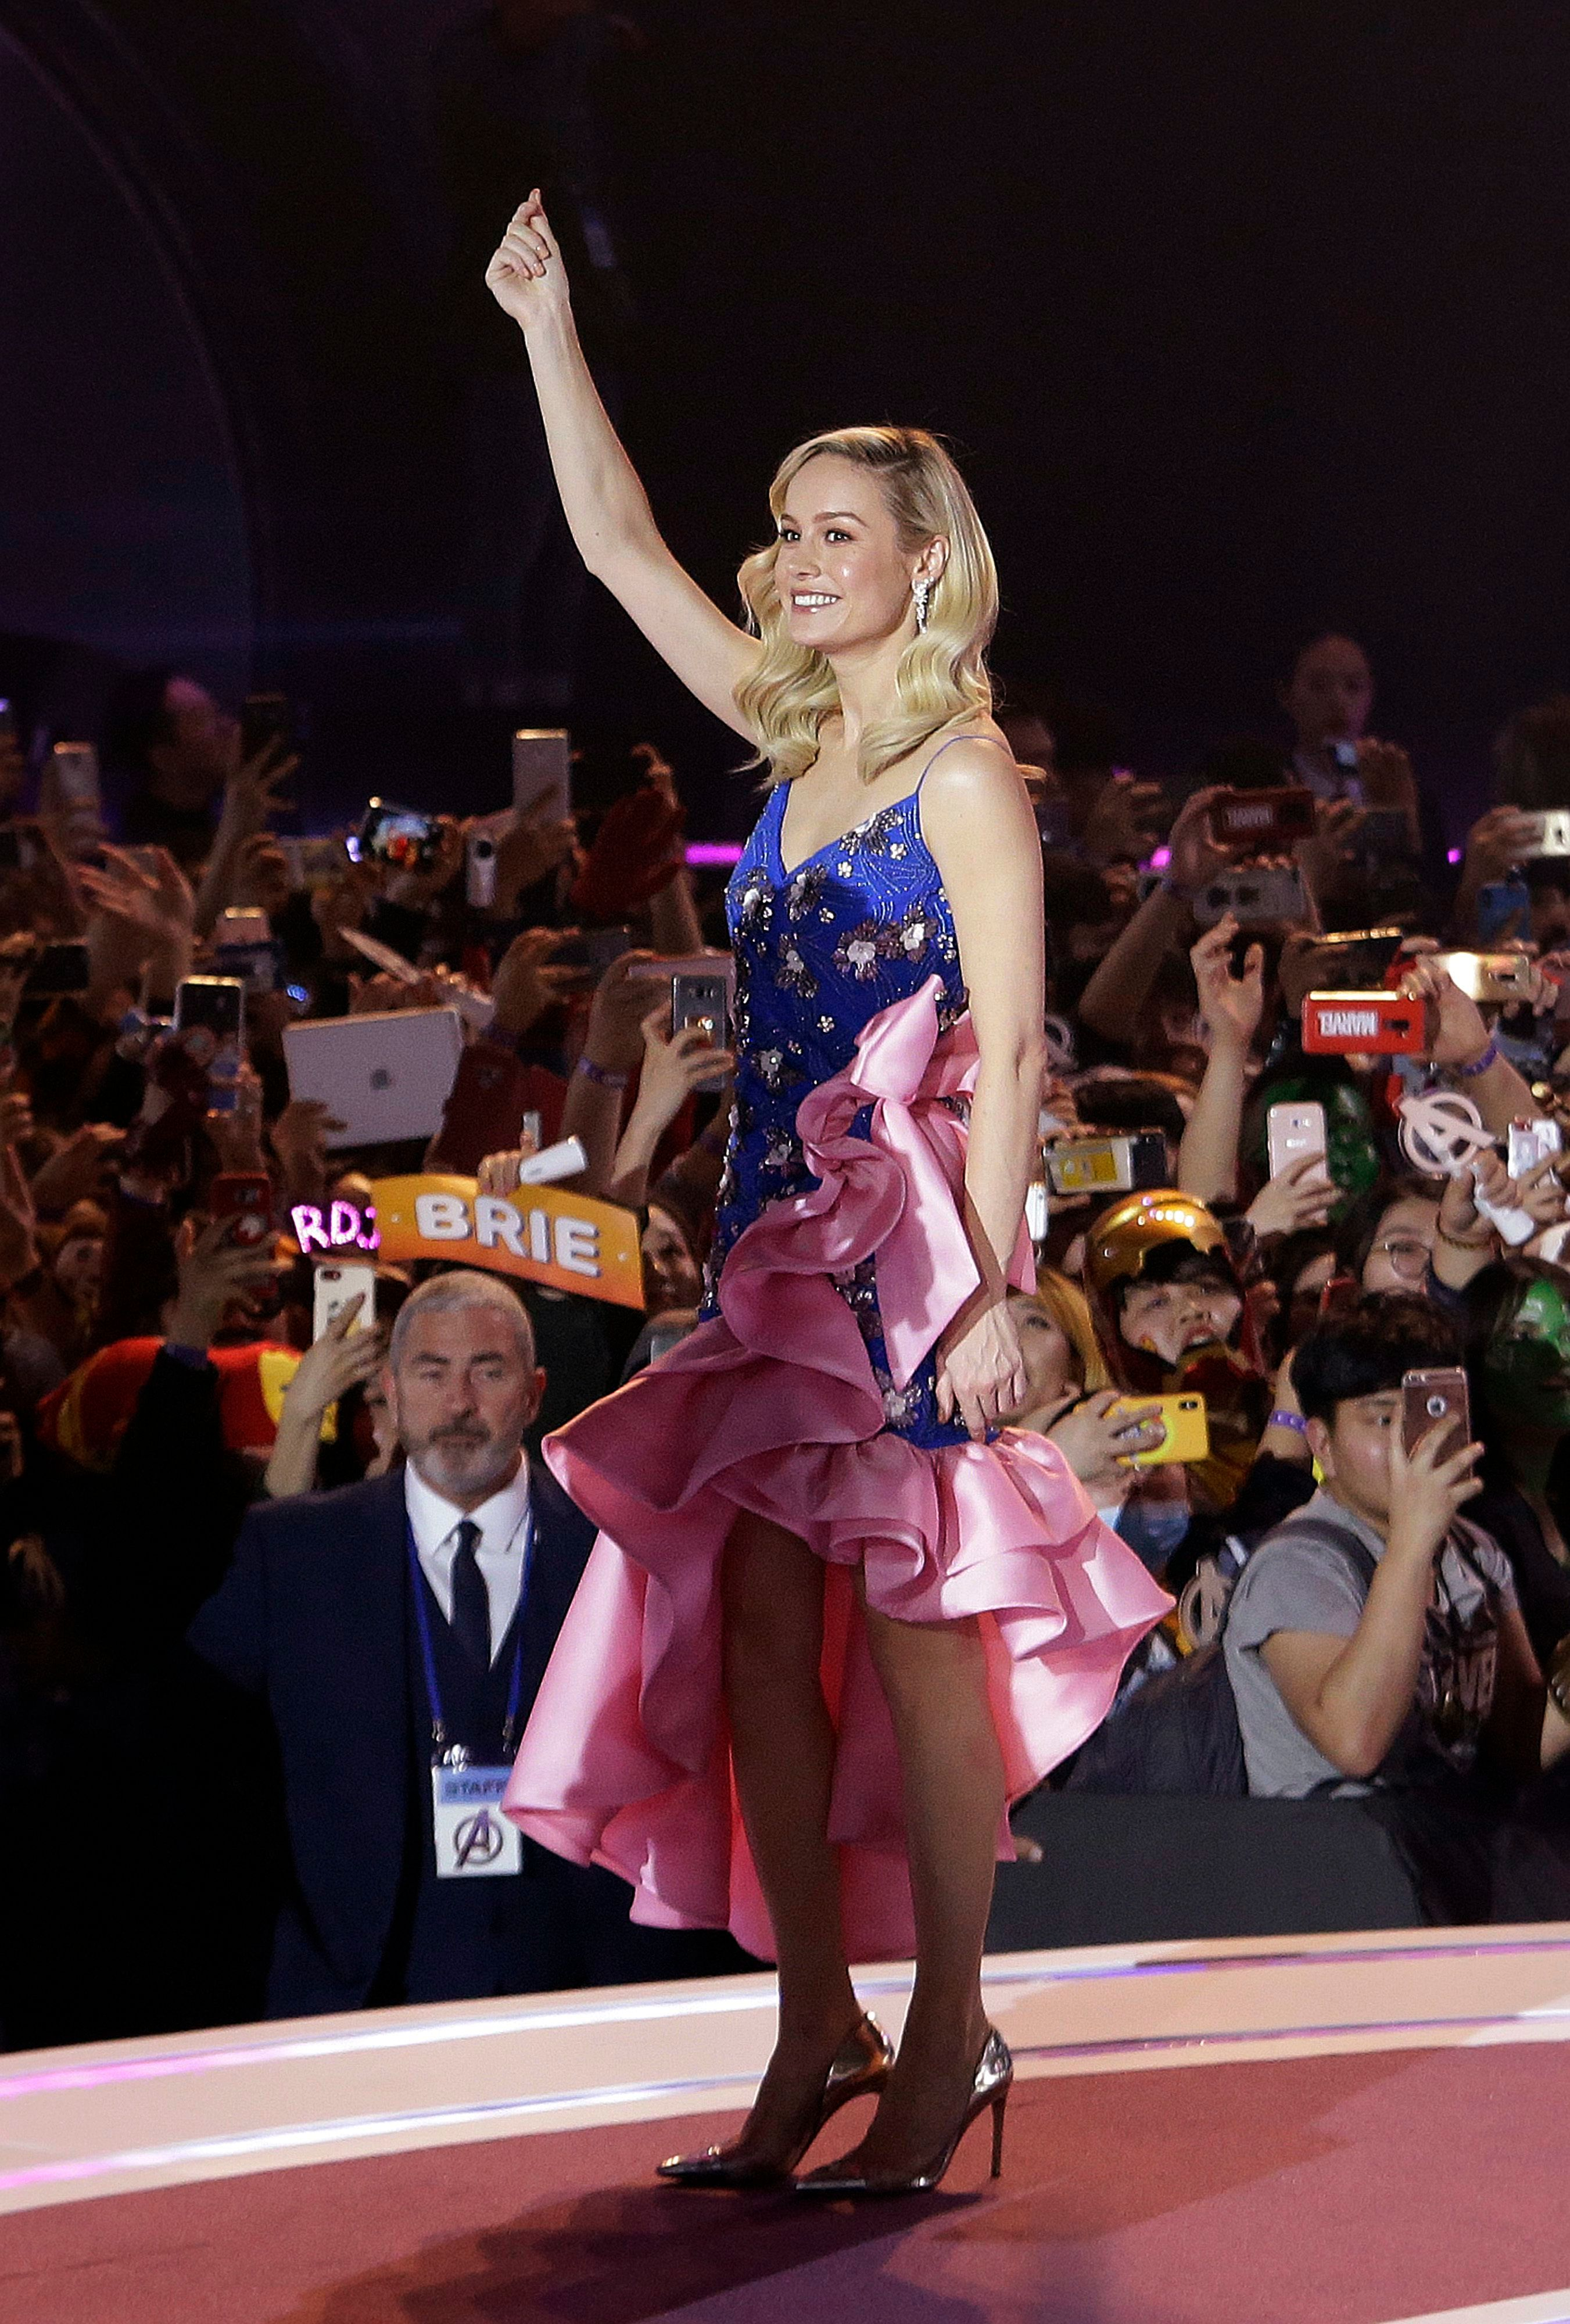 """Actress Brie Larson waves during an event to promote her latest film """"Avengers Endgame"""" in Seoul, South Korea, . The movie will open on April 24 in South KoreaAvengers, Seoul, South Korea - 15 Apr 2019Wearing Rodarte Same Outfit as catwalk model *10083131f"""